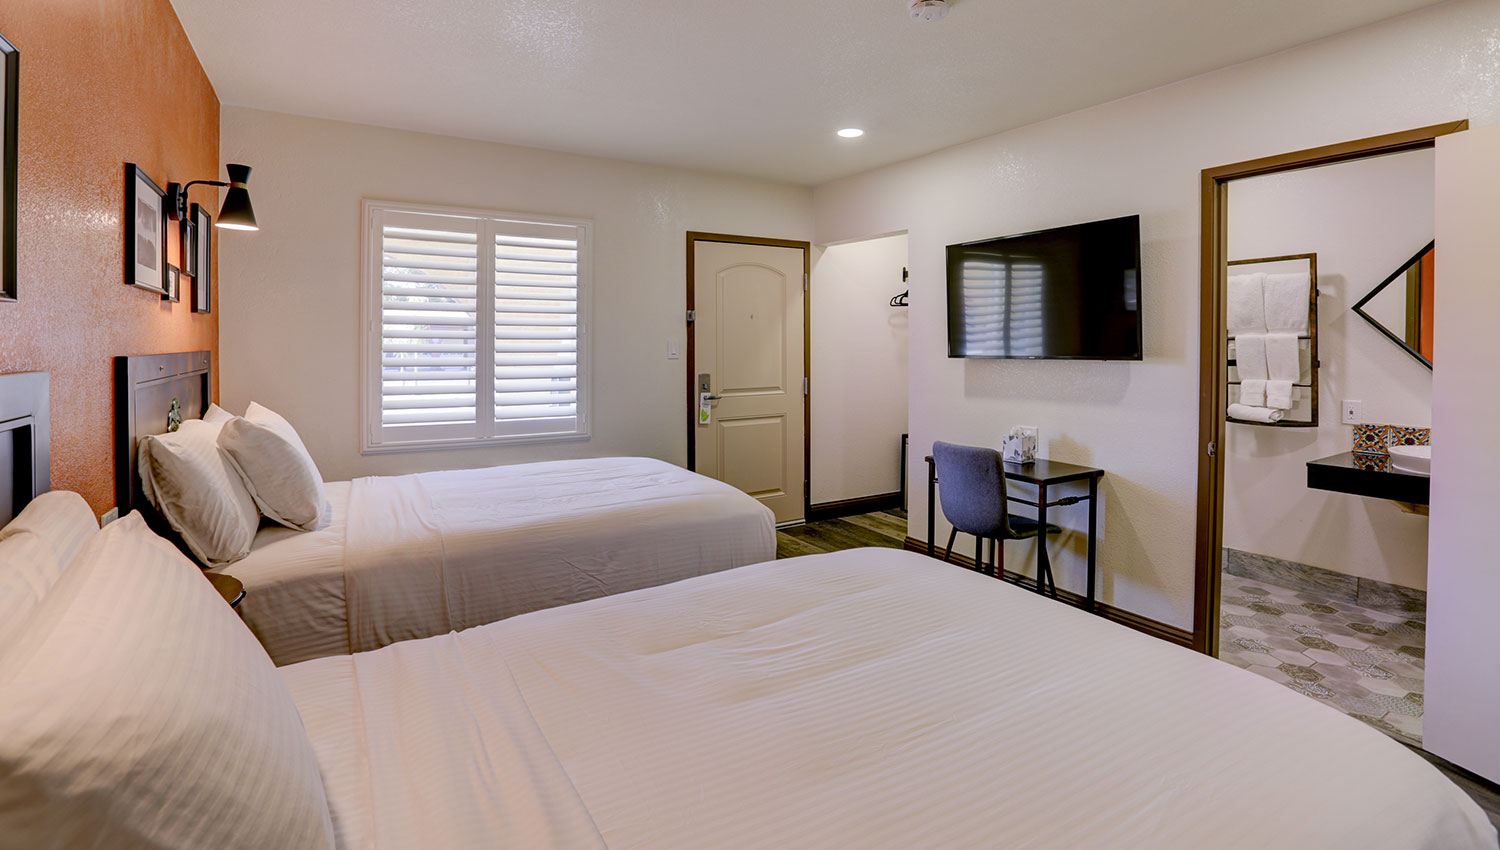 PERFECT ACCOMMODATIONS FOR FAMILIES VISITING SACRAMENTO